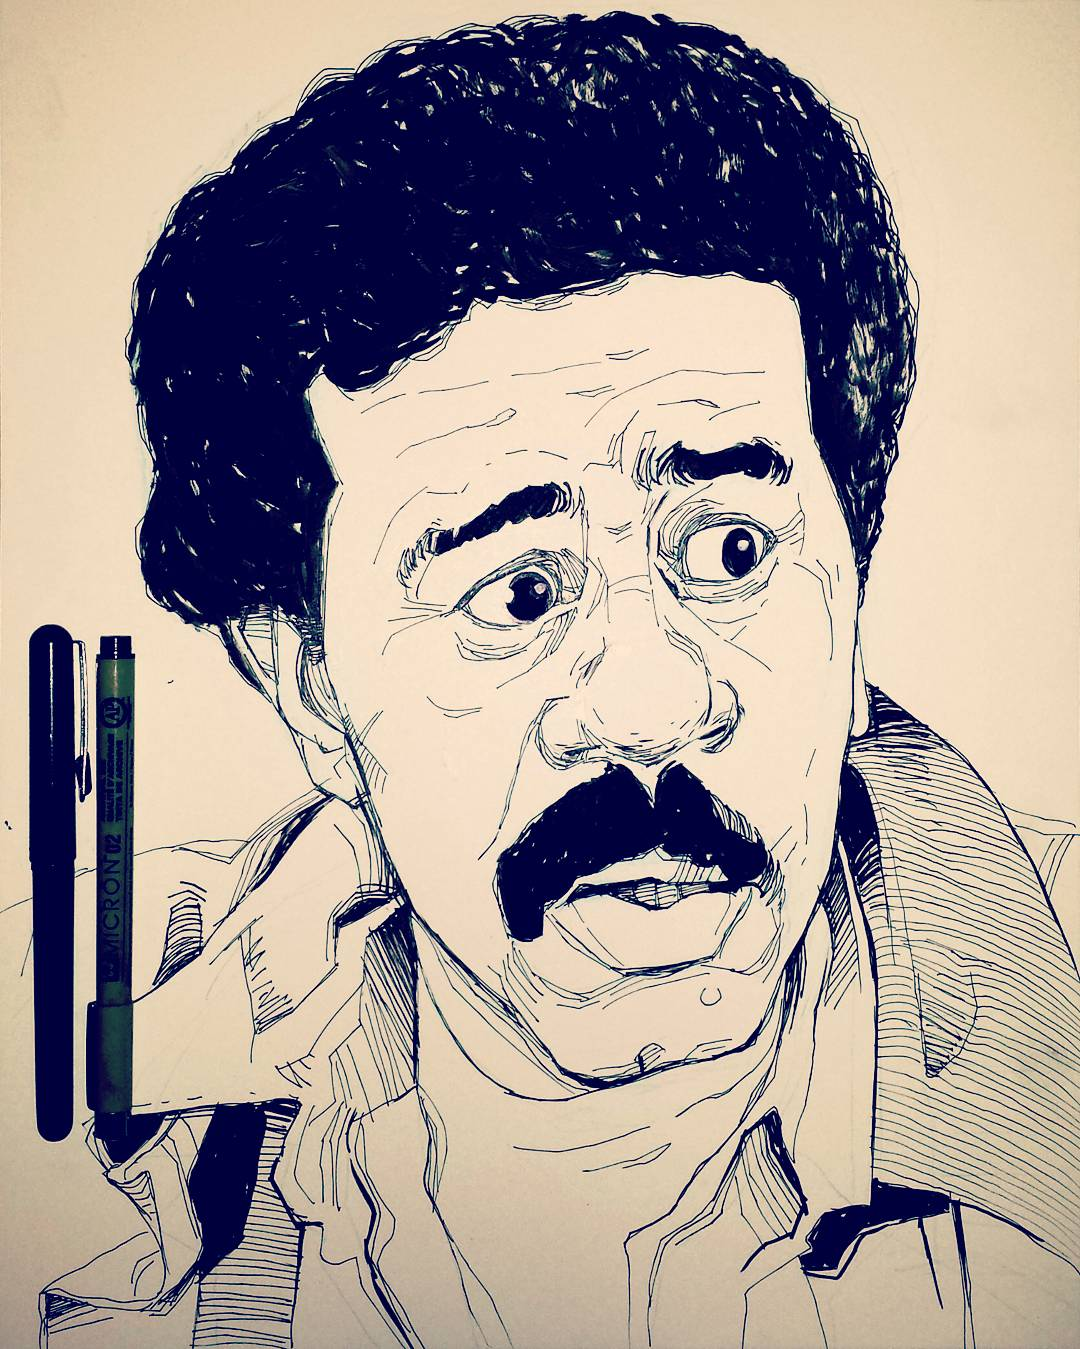 Illustration Richard Pryor Stir Crazy